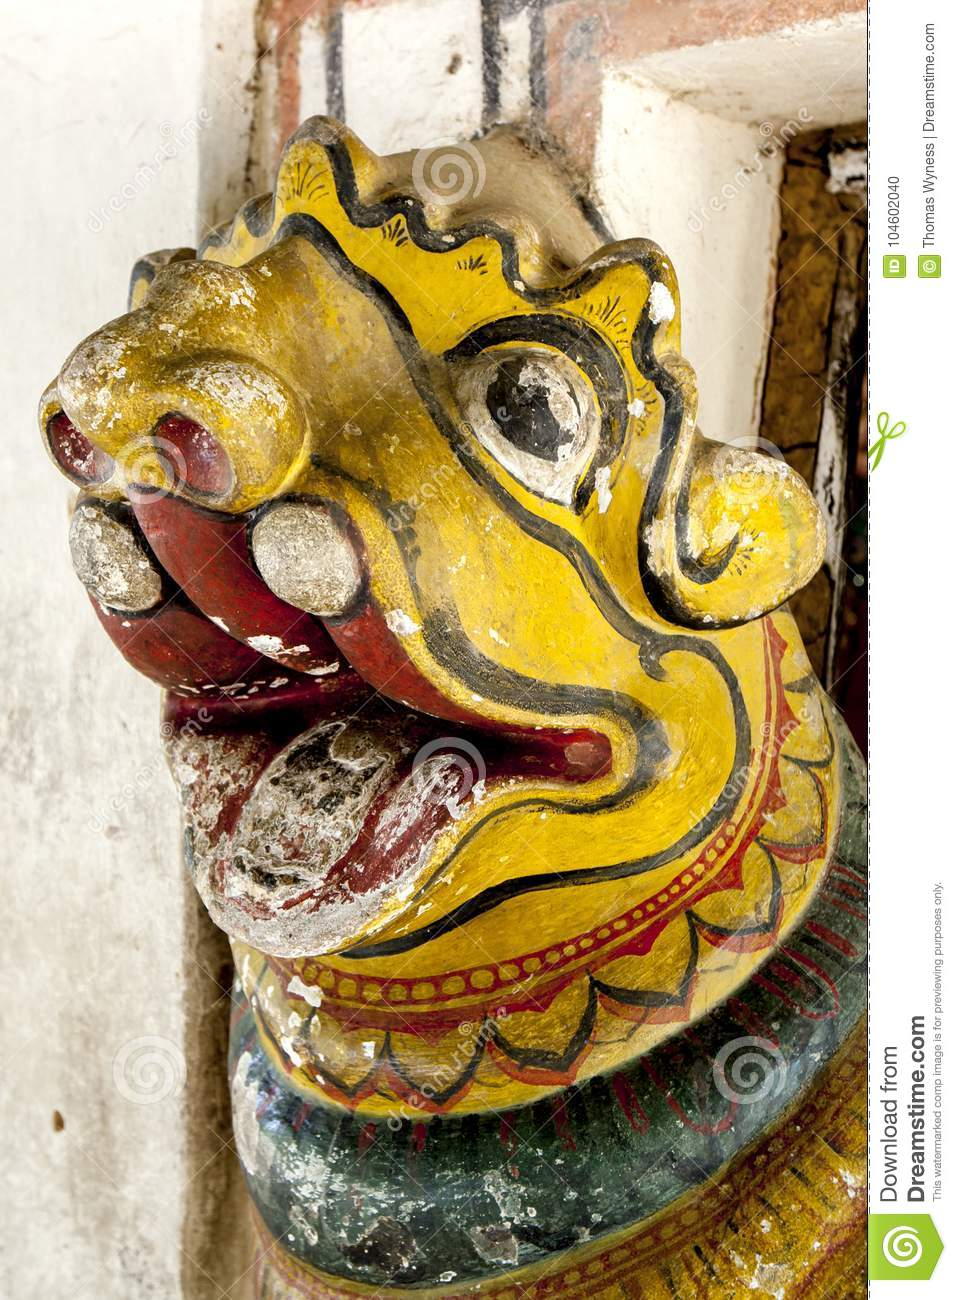 The head of one of the ancient lion statues which guards the entrance door to the main shrine at Embekke Devale.